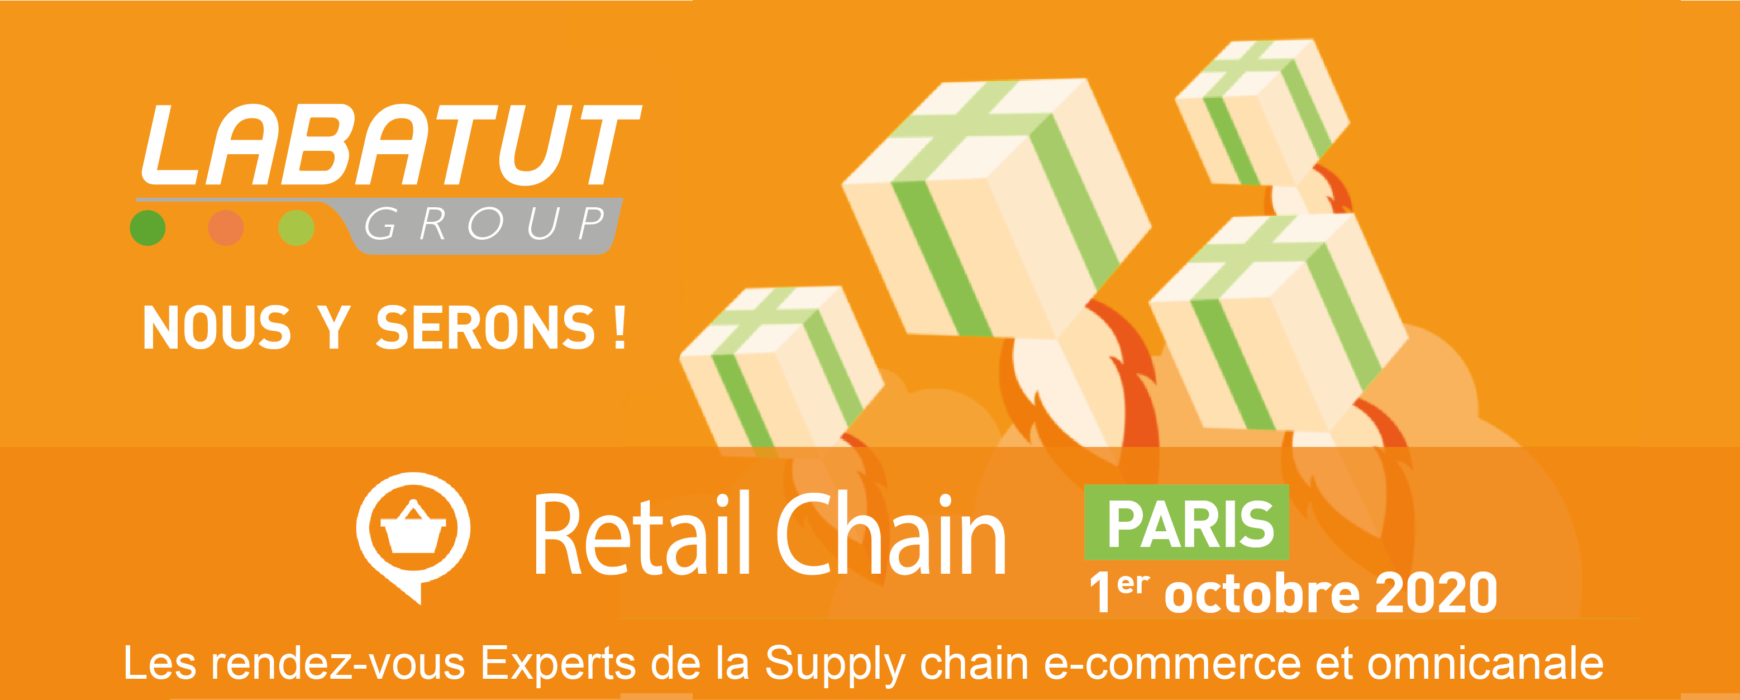 Salon Retail Chain : Nos solutions pour une Supply Chain e-commerce et omnicanale!